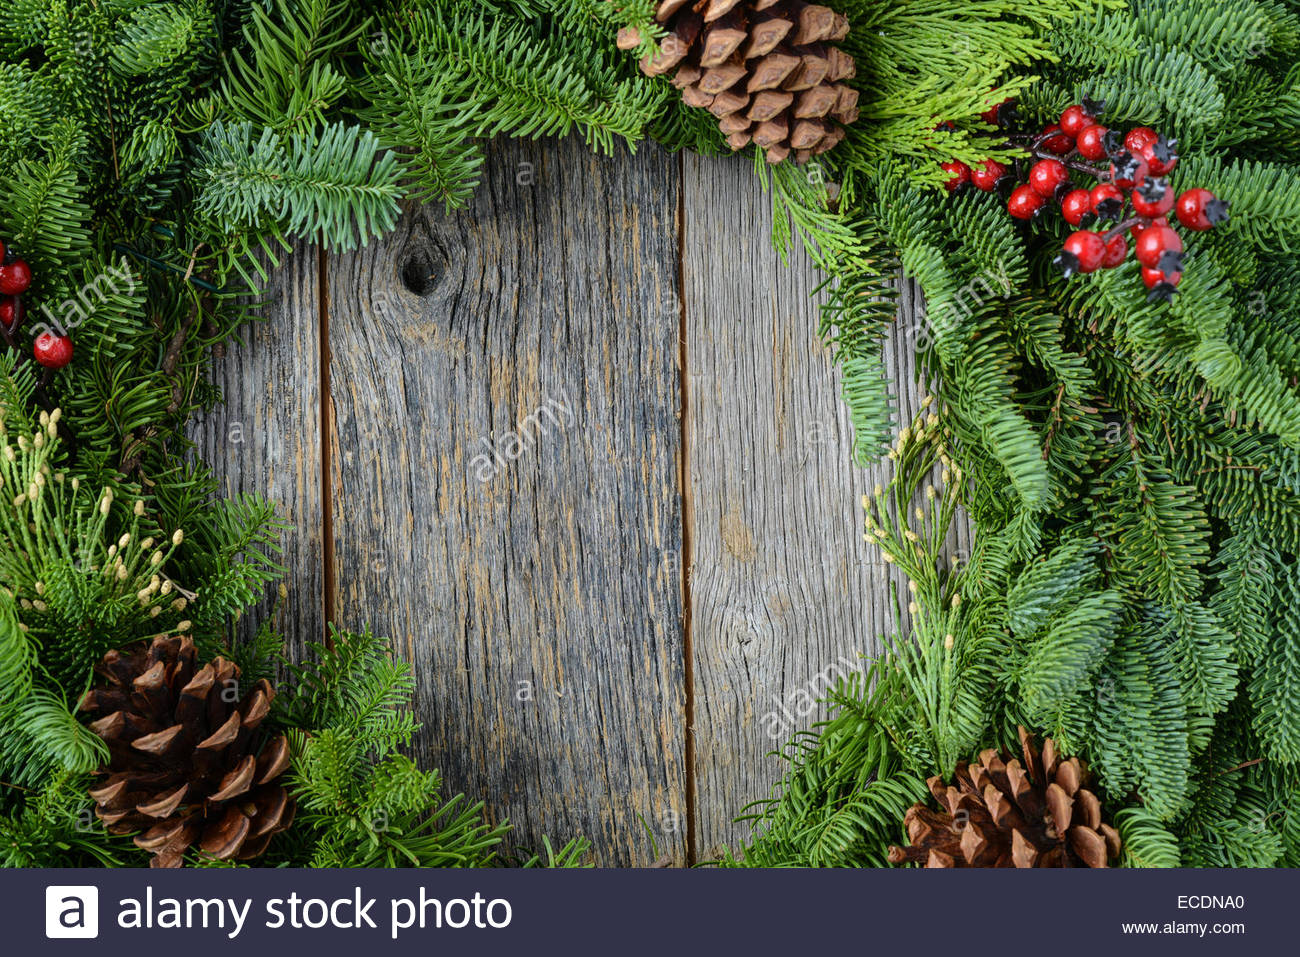 Christmas Wreath with Rustic Wood Background Stock Photo 76519464 1300x957